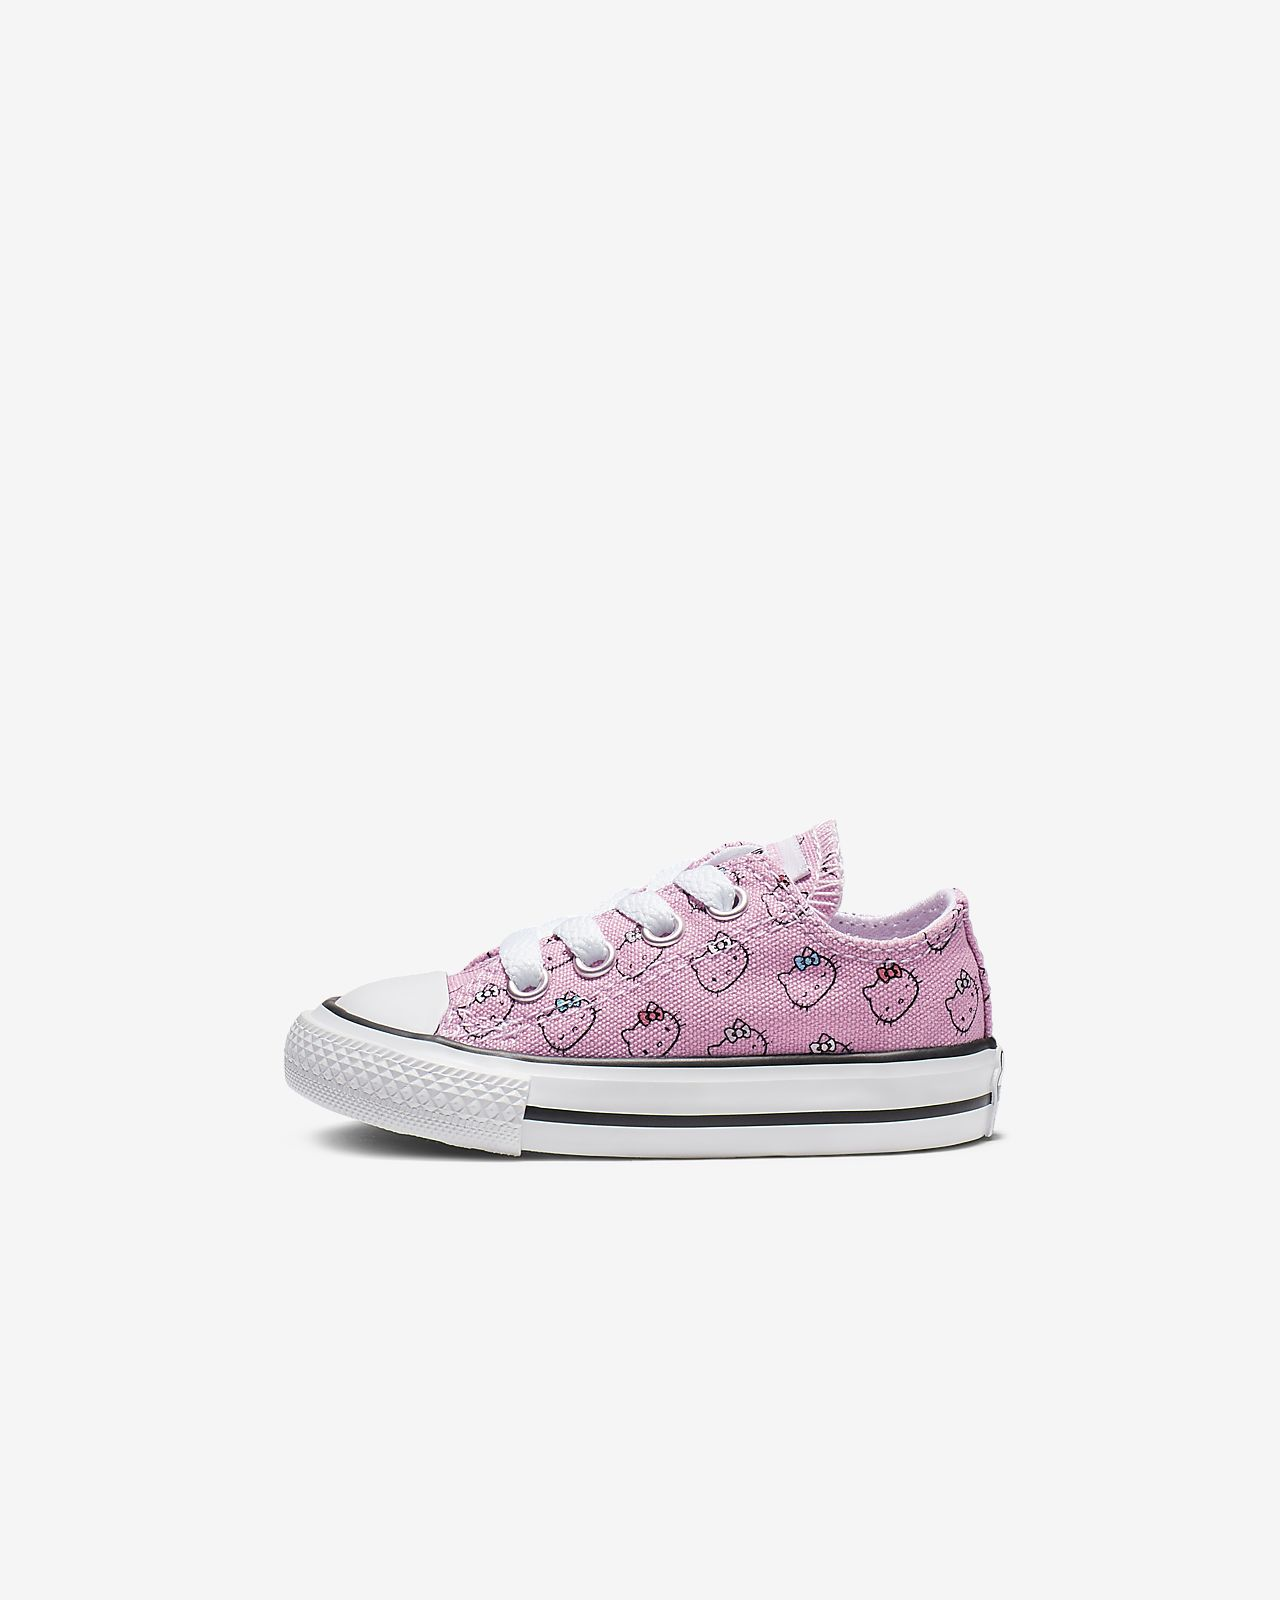 Converse x Hello Kitty Chuck Taylor All Star Low Top Baby Shoe